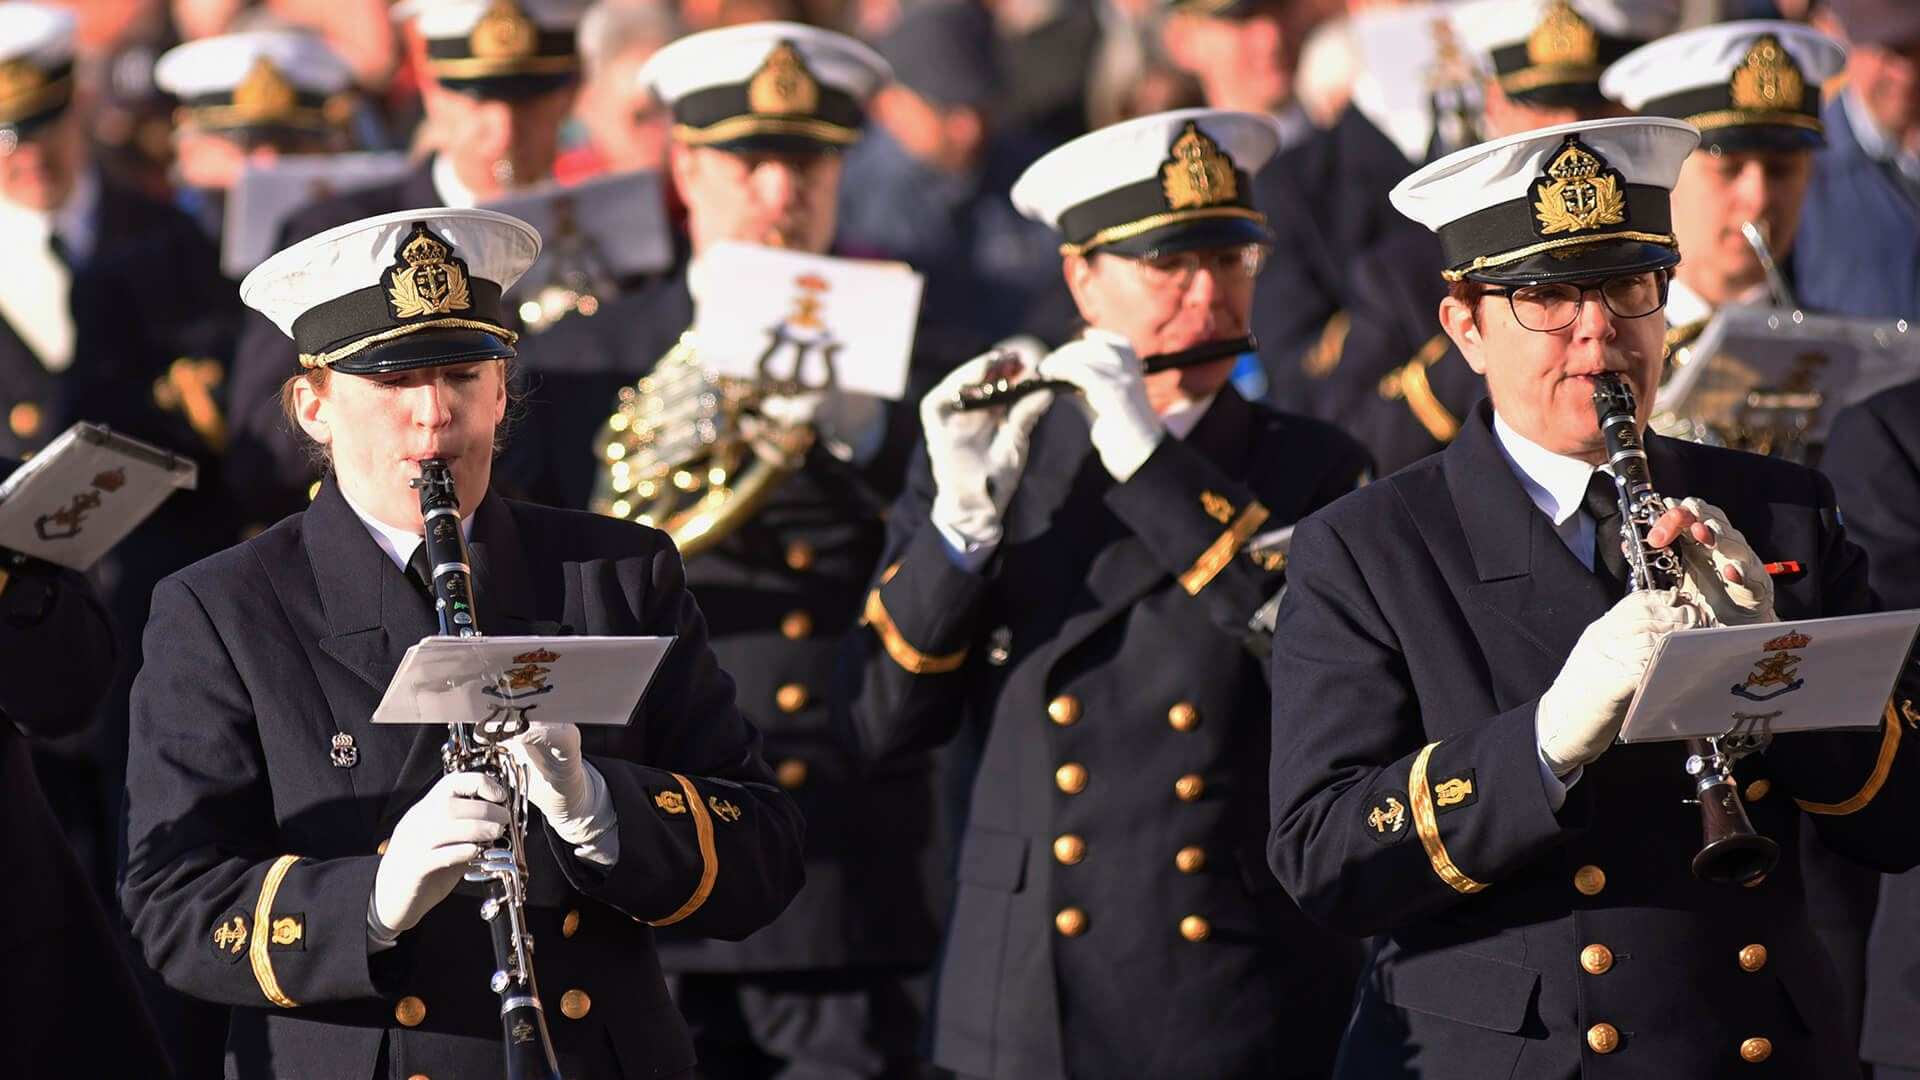 Marchconcert with the Swedish Royal Naval Band